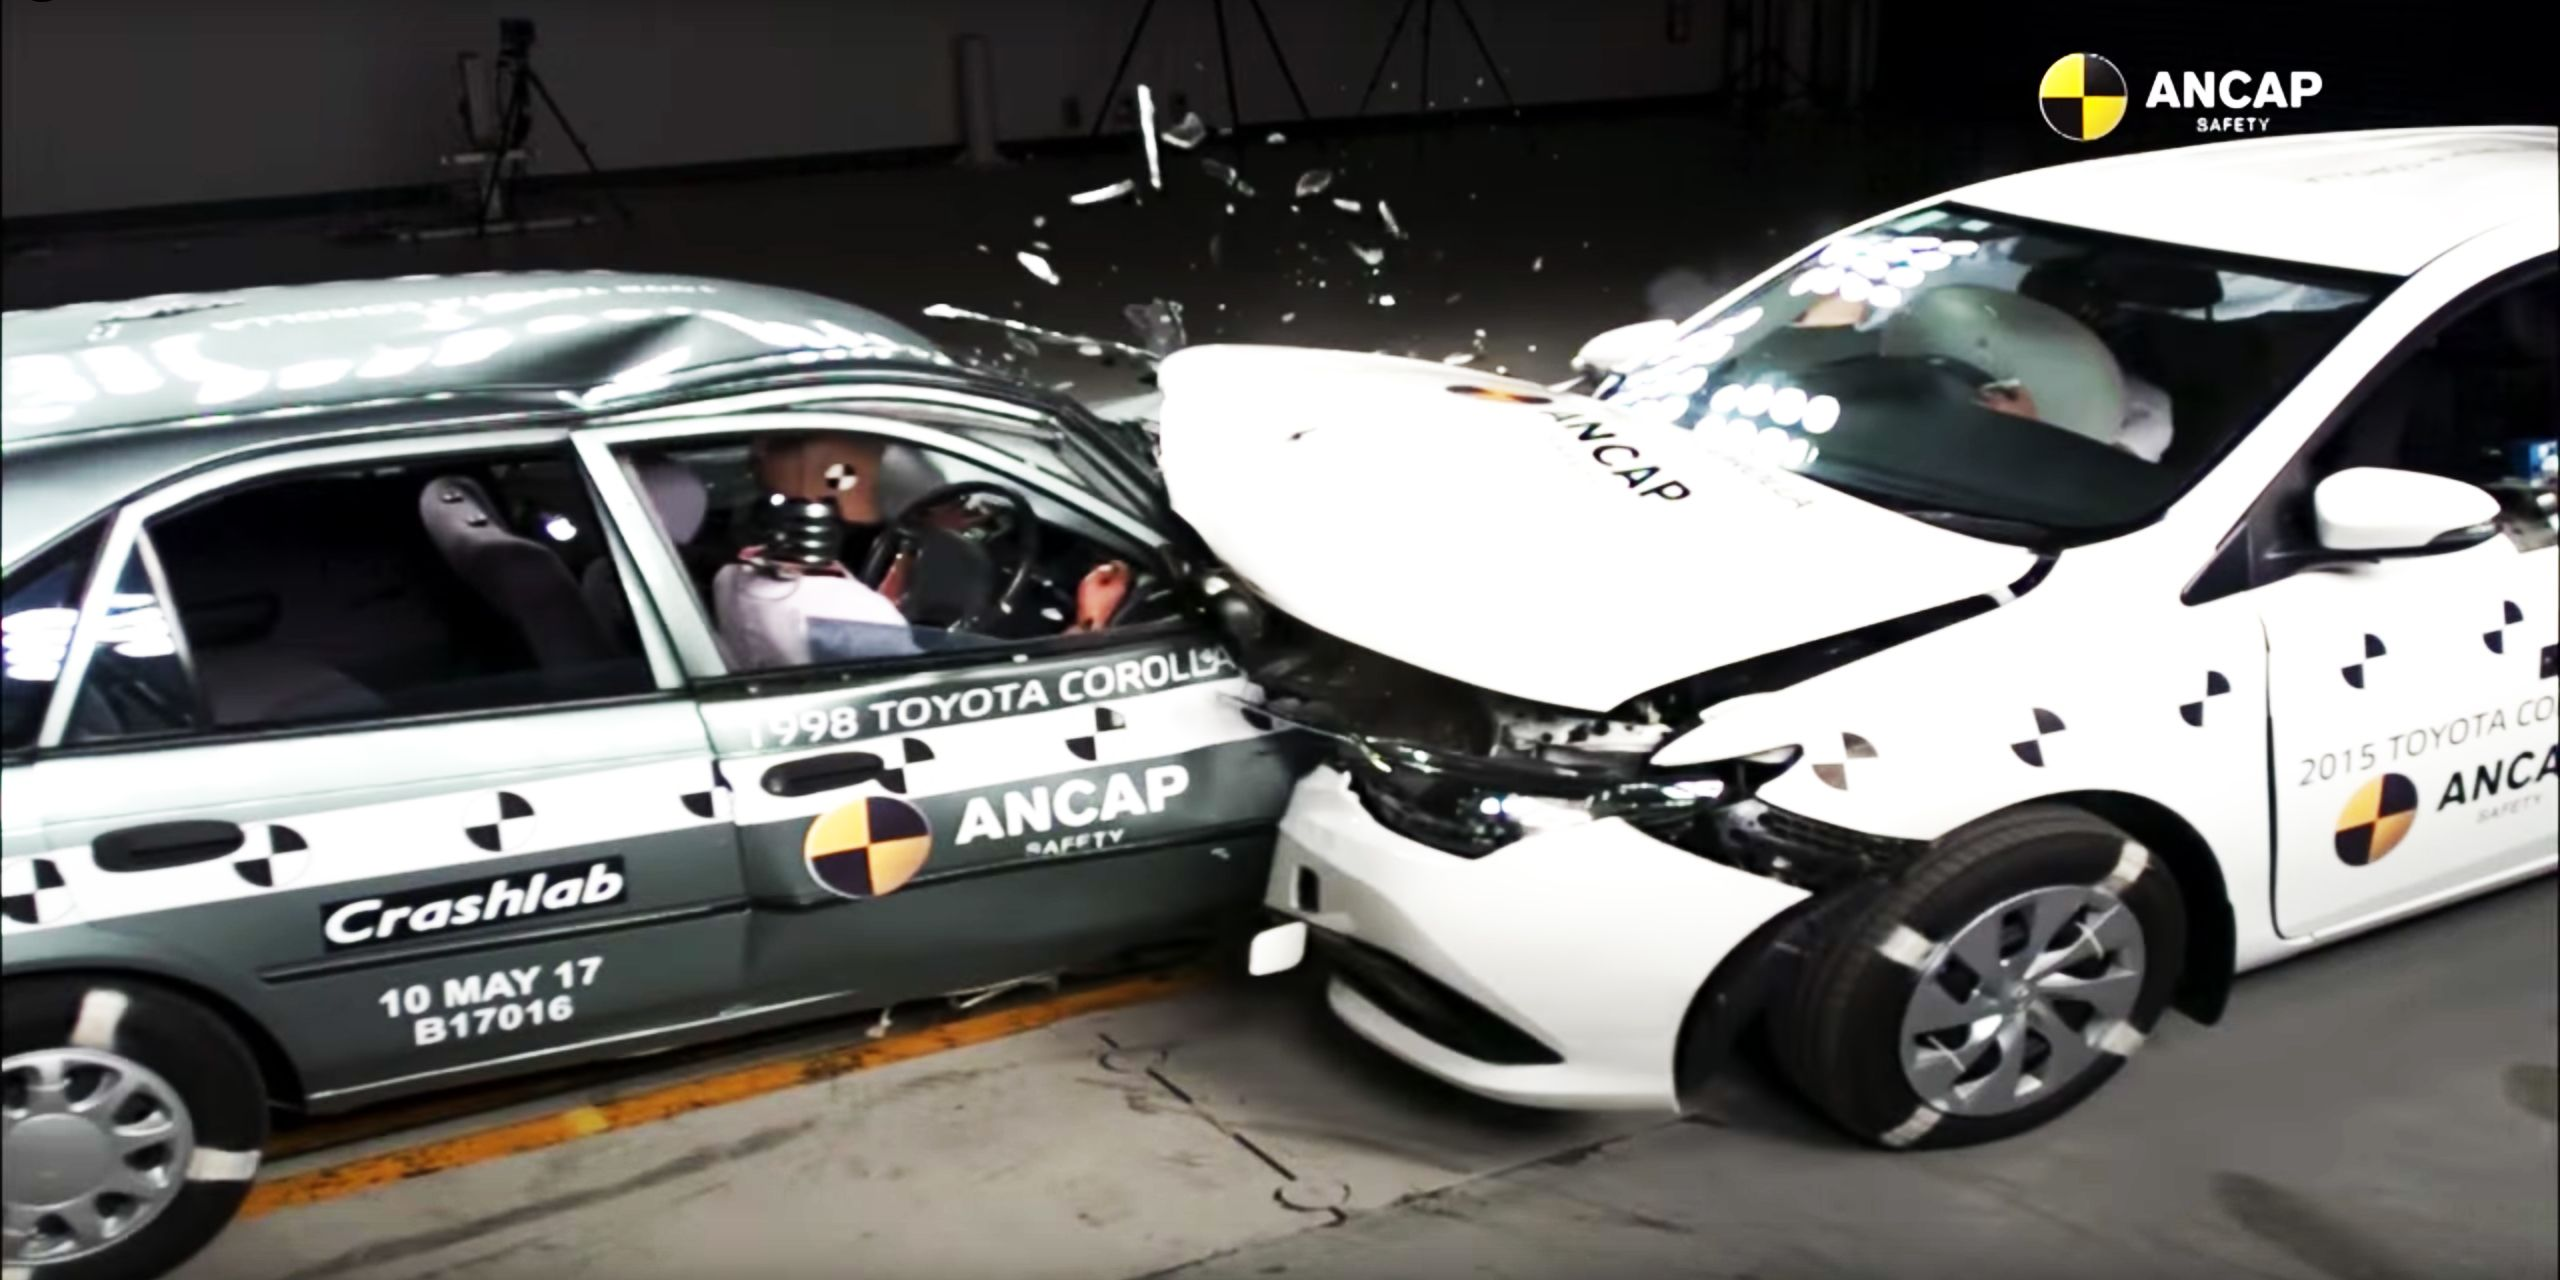 Car Crash Safety - New vs Old, Which Car is Safer?